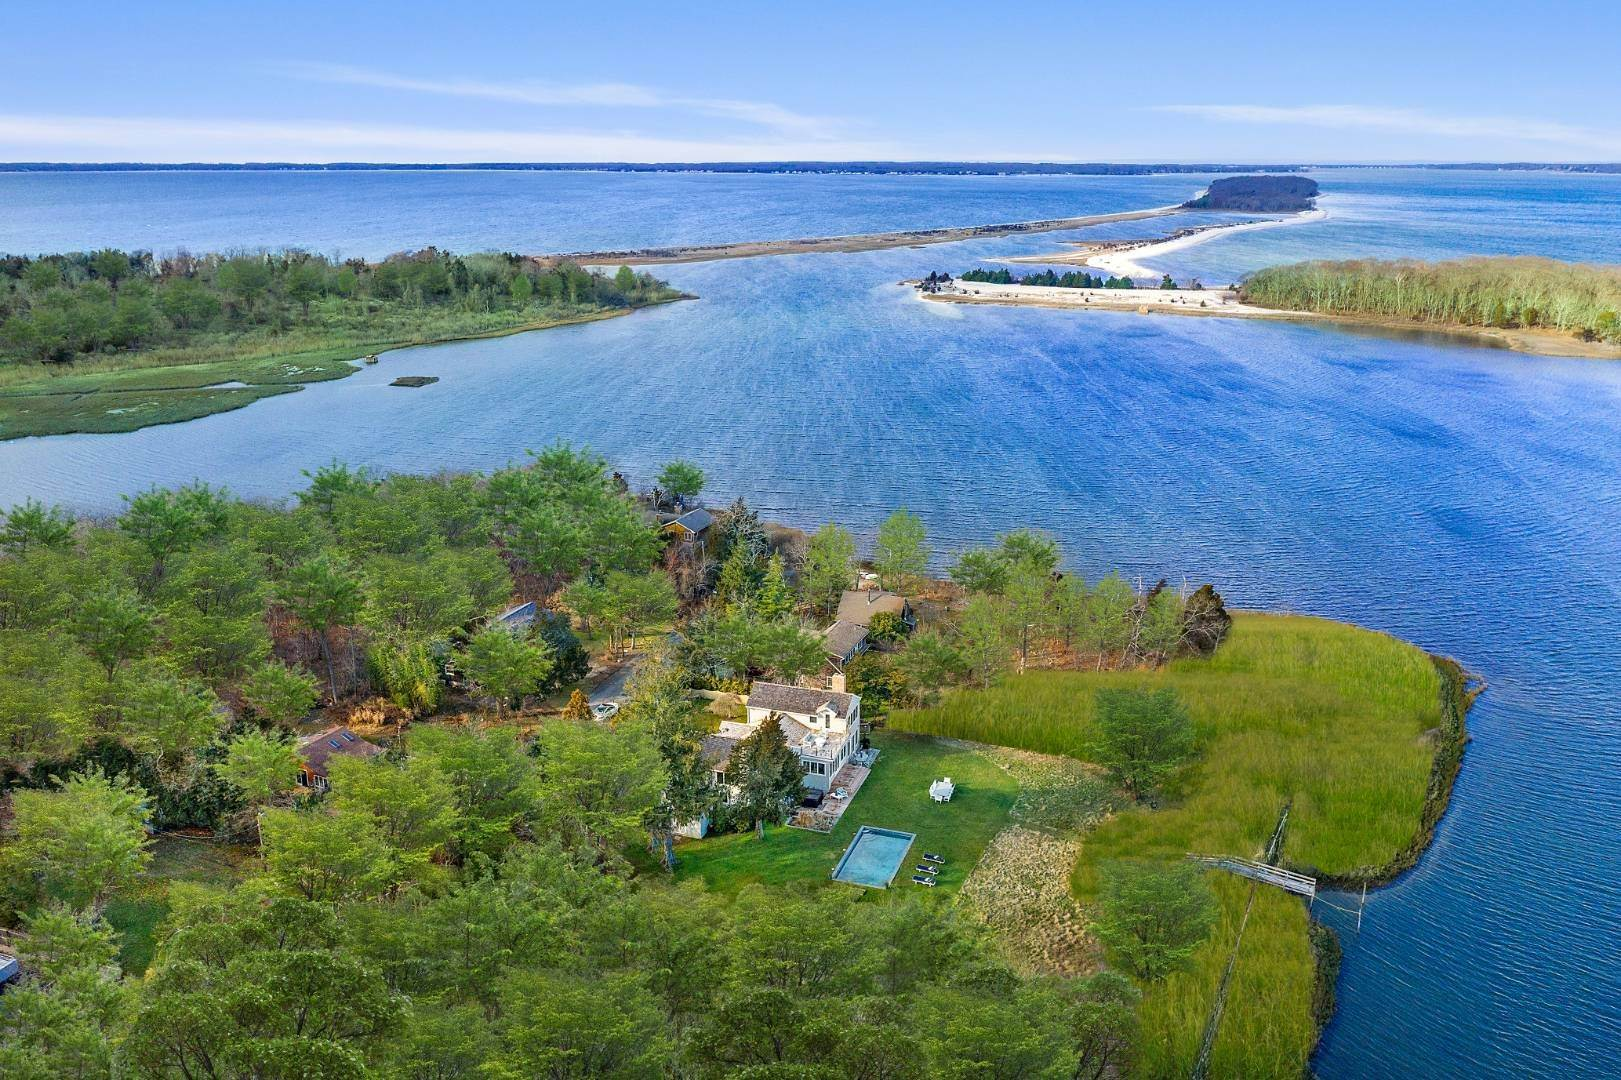 Single Family Home for Sale at Waterfront 2.4 Acres With Dock 22 Maple Ln, Sag Harbor, NY 11963